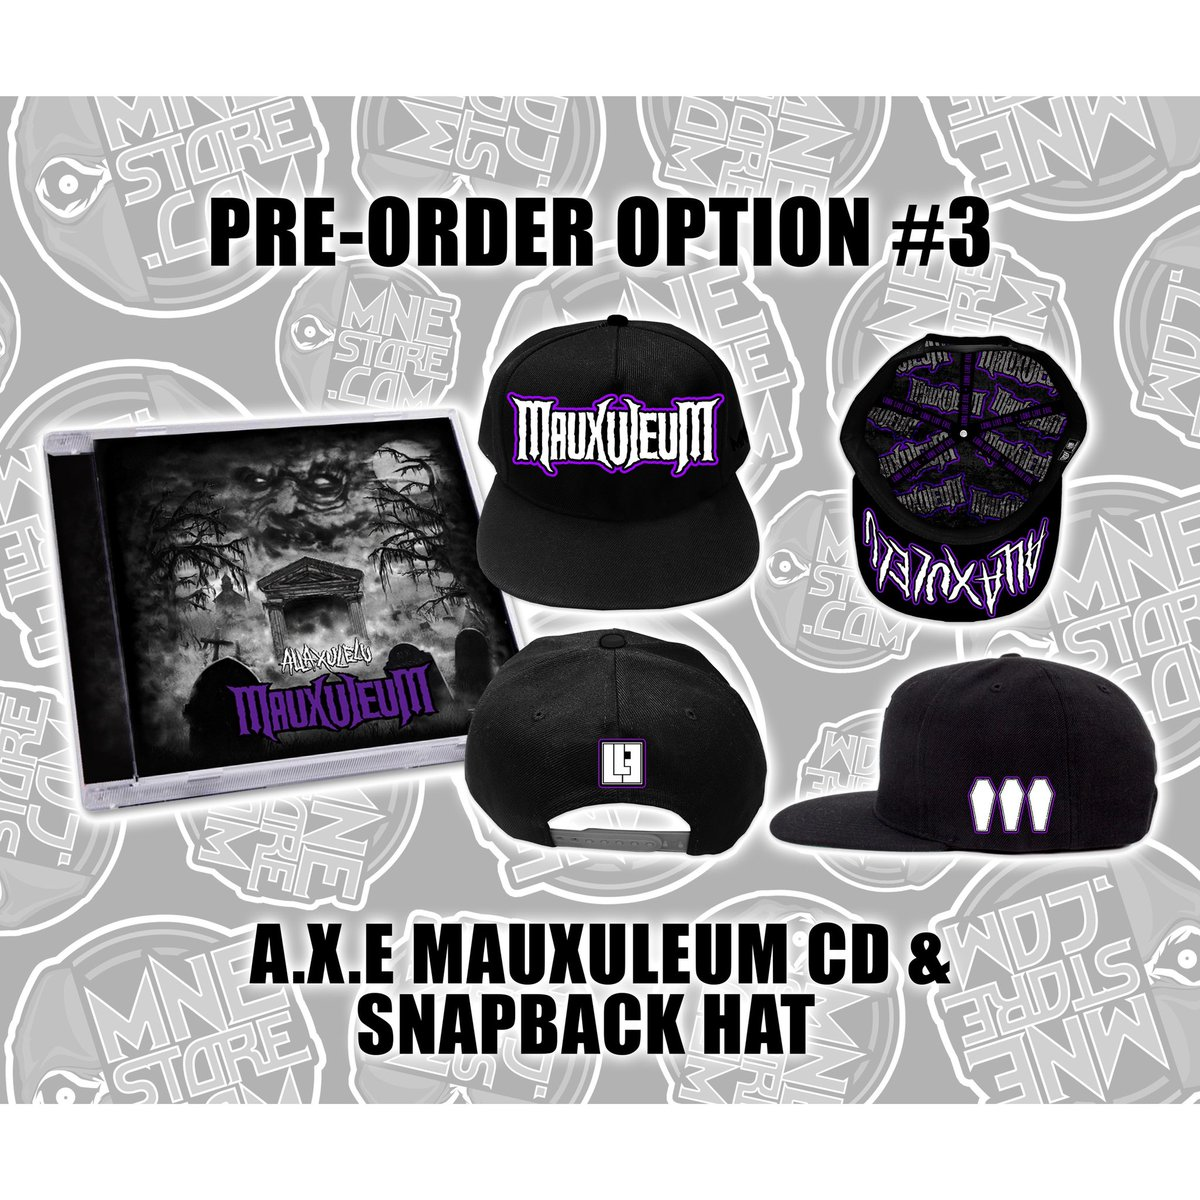 Pre orders for @allaxulelu 's #mauxuleum are live now🎃 Hit up the link in bio 👆 to check all of your options out!!!  New #evil is coming 💀 #allaxulelu #majikninjaentertainment #axe #xuligans #newmusic #rap #underground #mne2020 https://t.co/o4DrEHsZOG